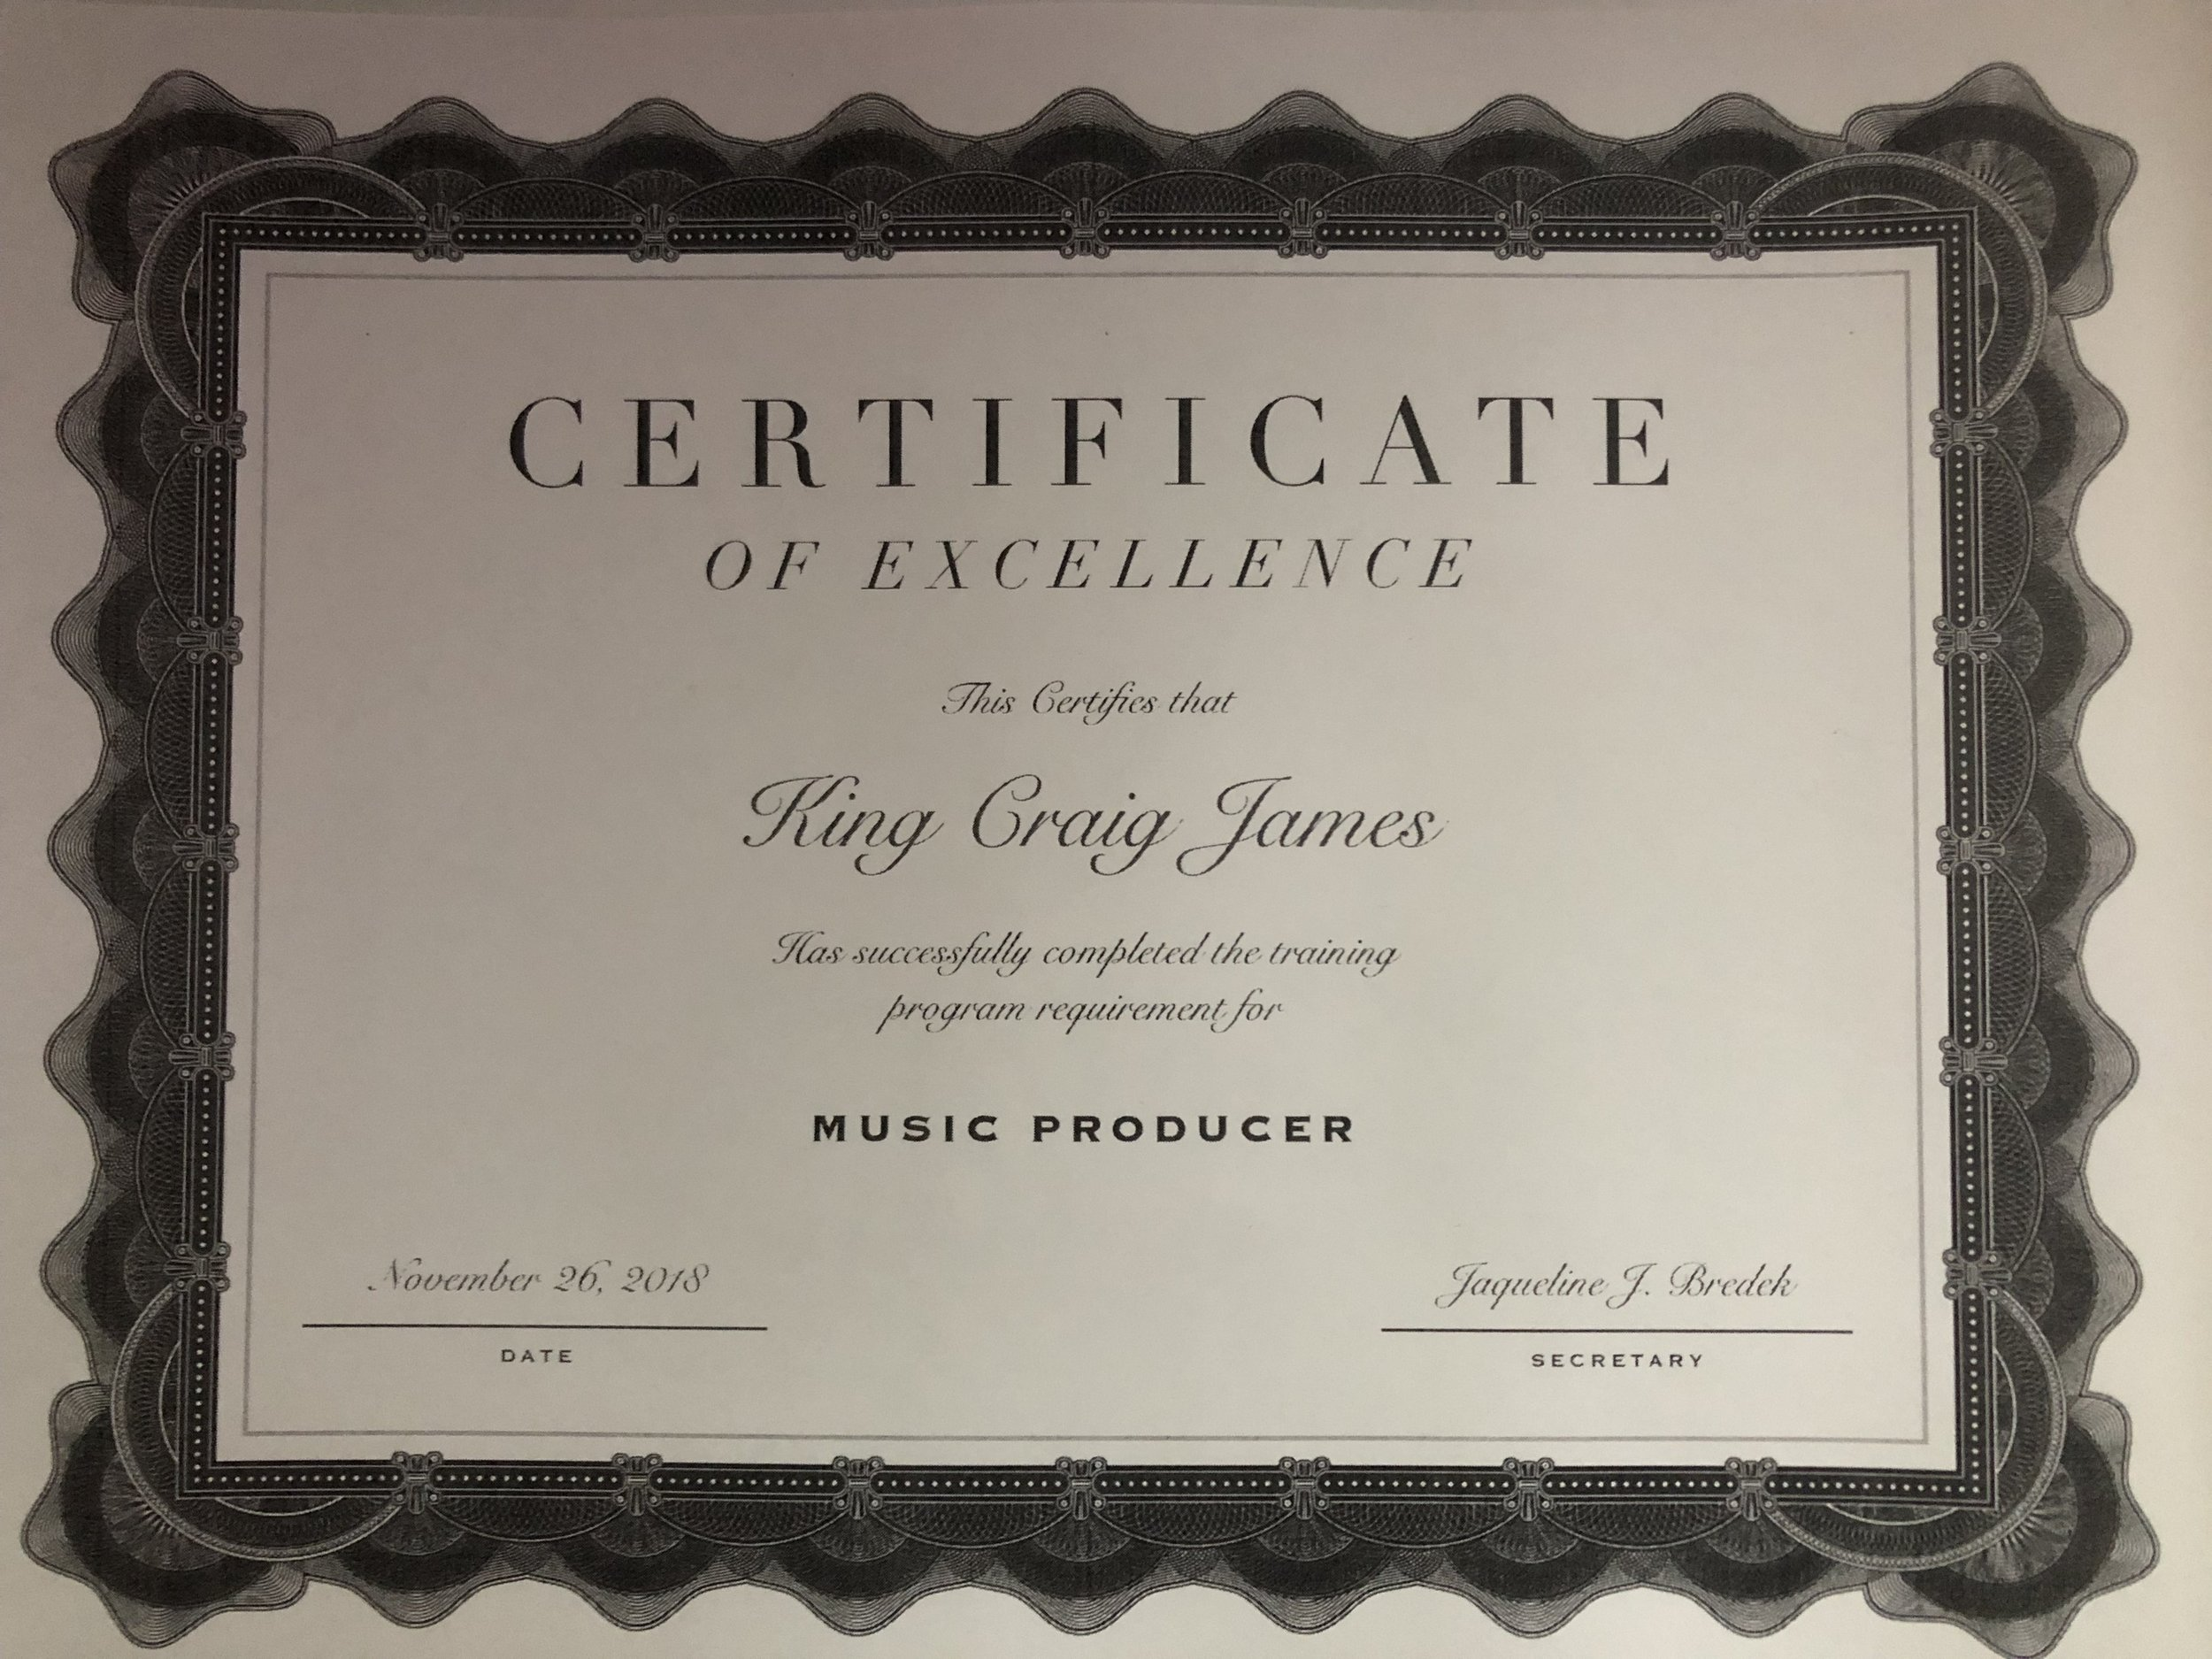 A certificate of excellence for me